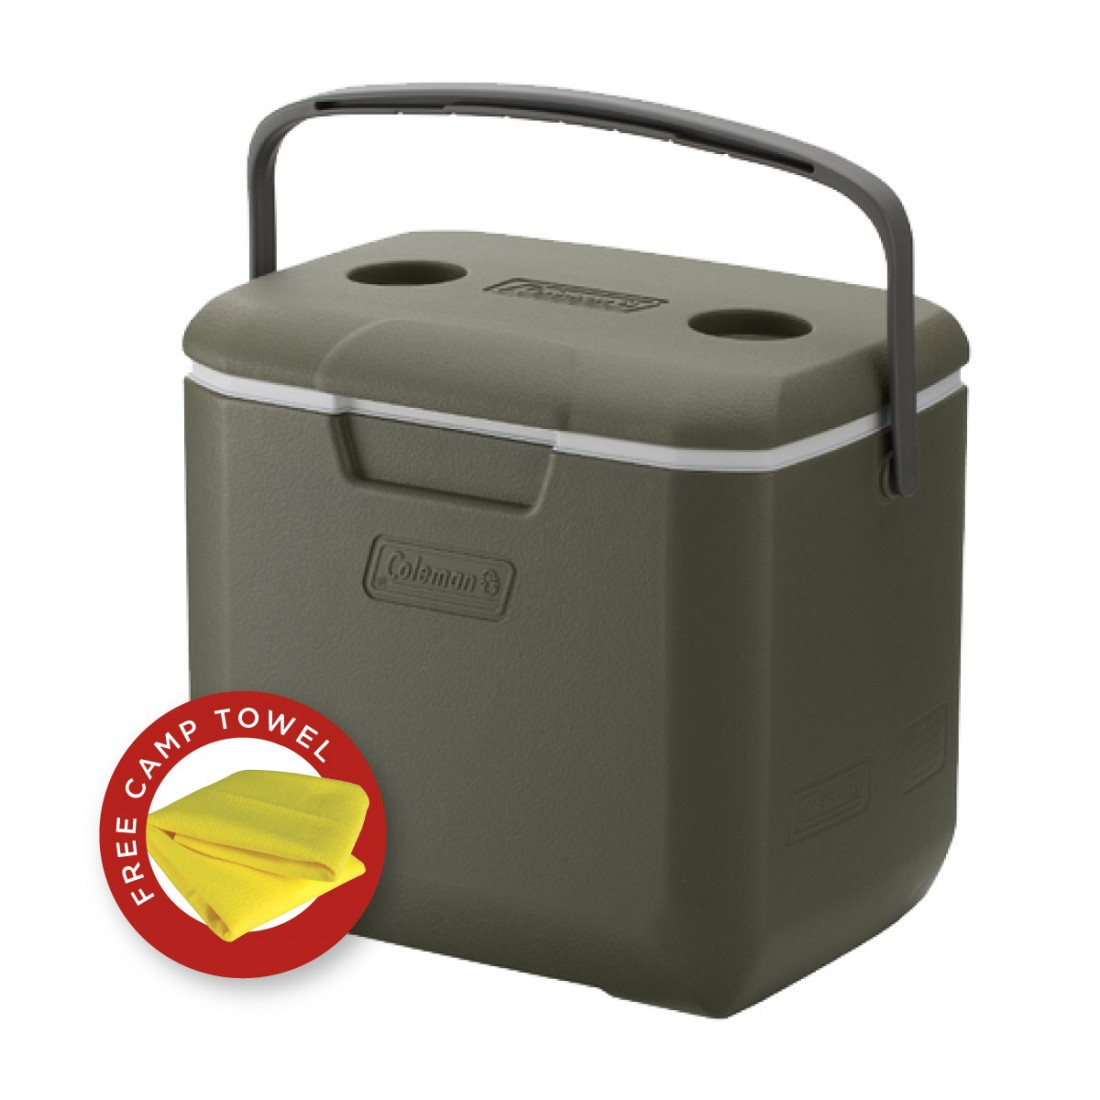 COLEMAN COOLER 30QT OLIVE LEAF JAPAN (LIMITED EDITION)